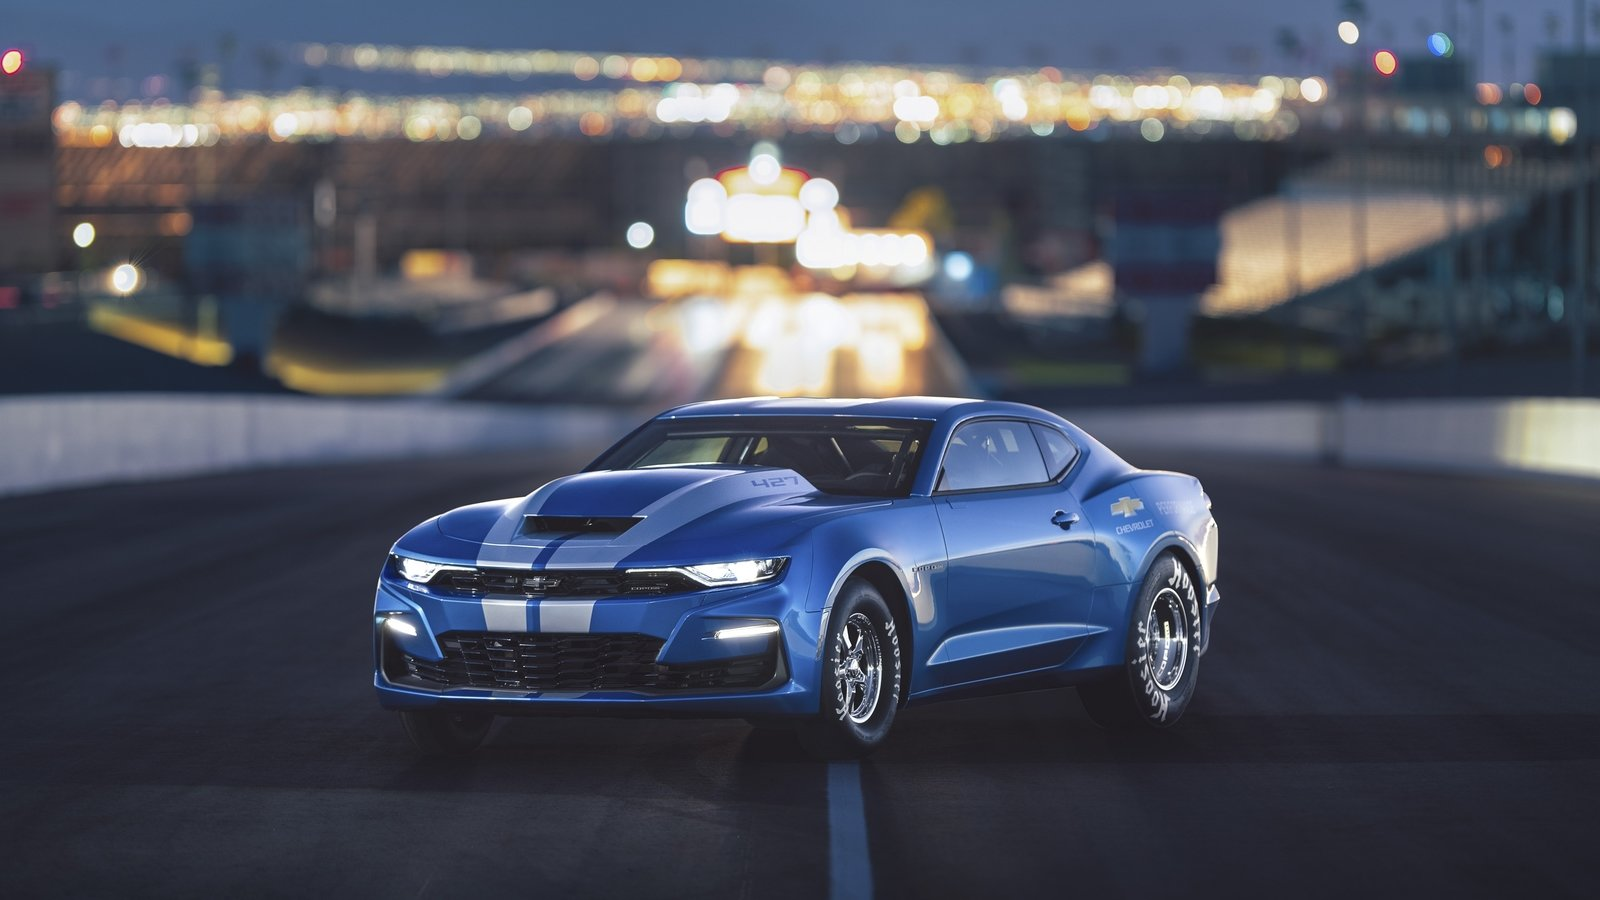 2019 Chevrolet Copo Camaro Top Speed